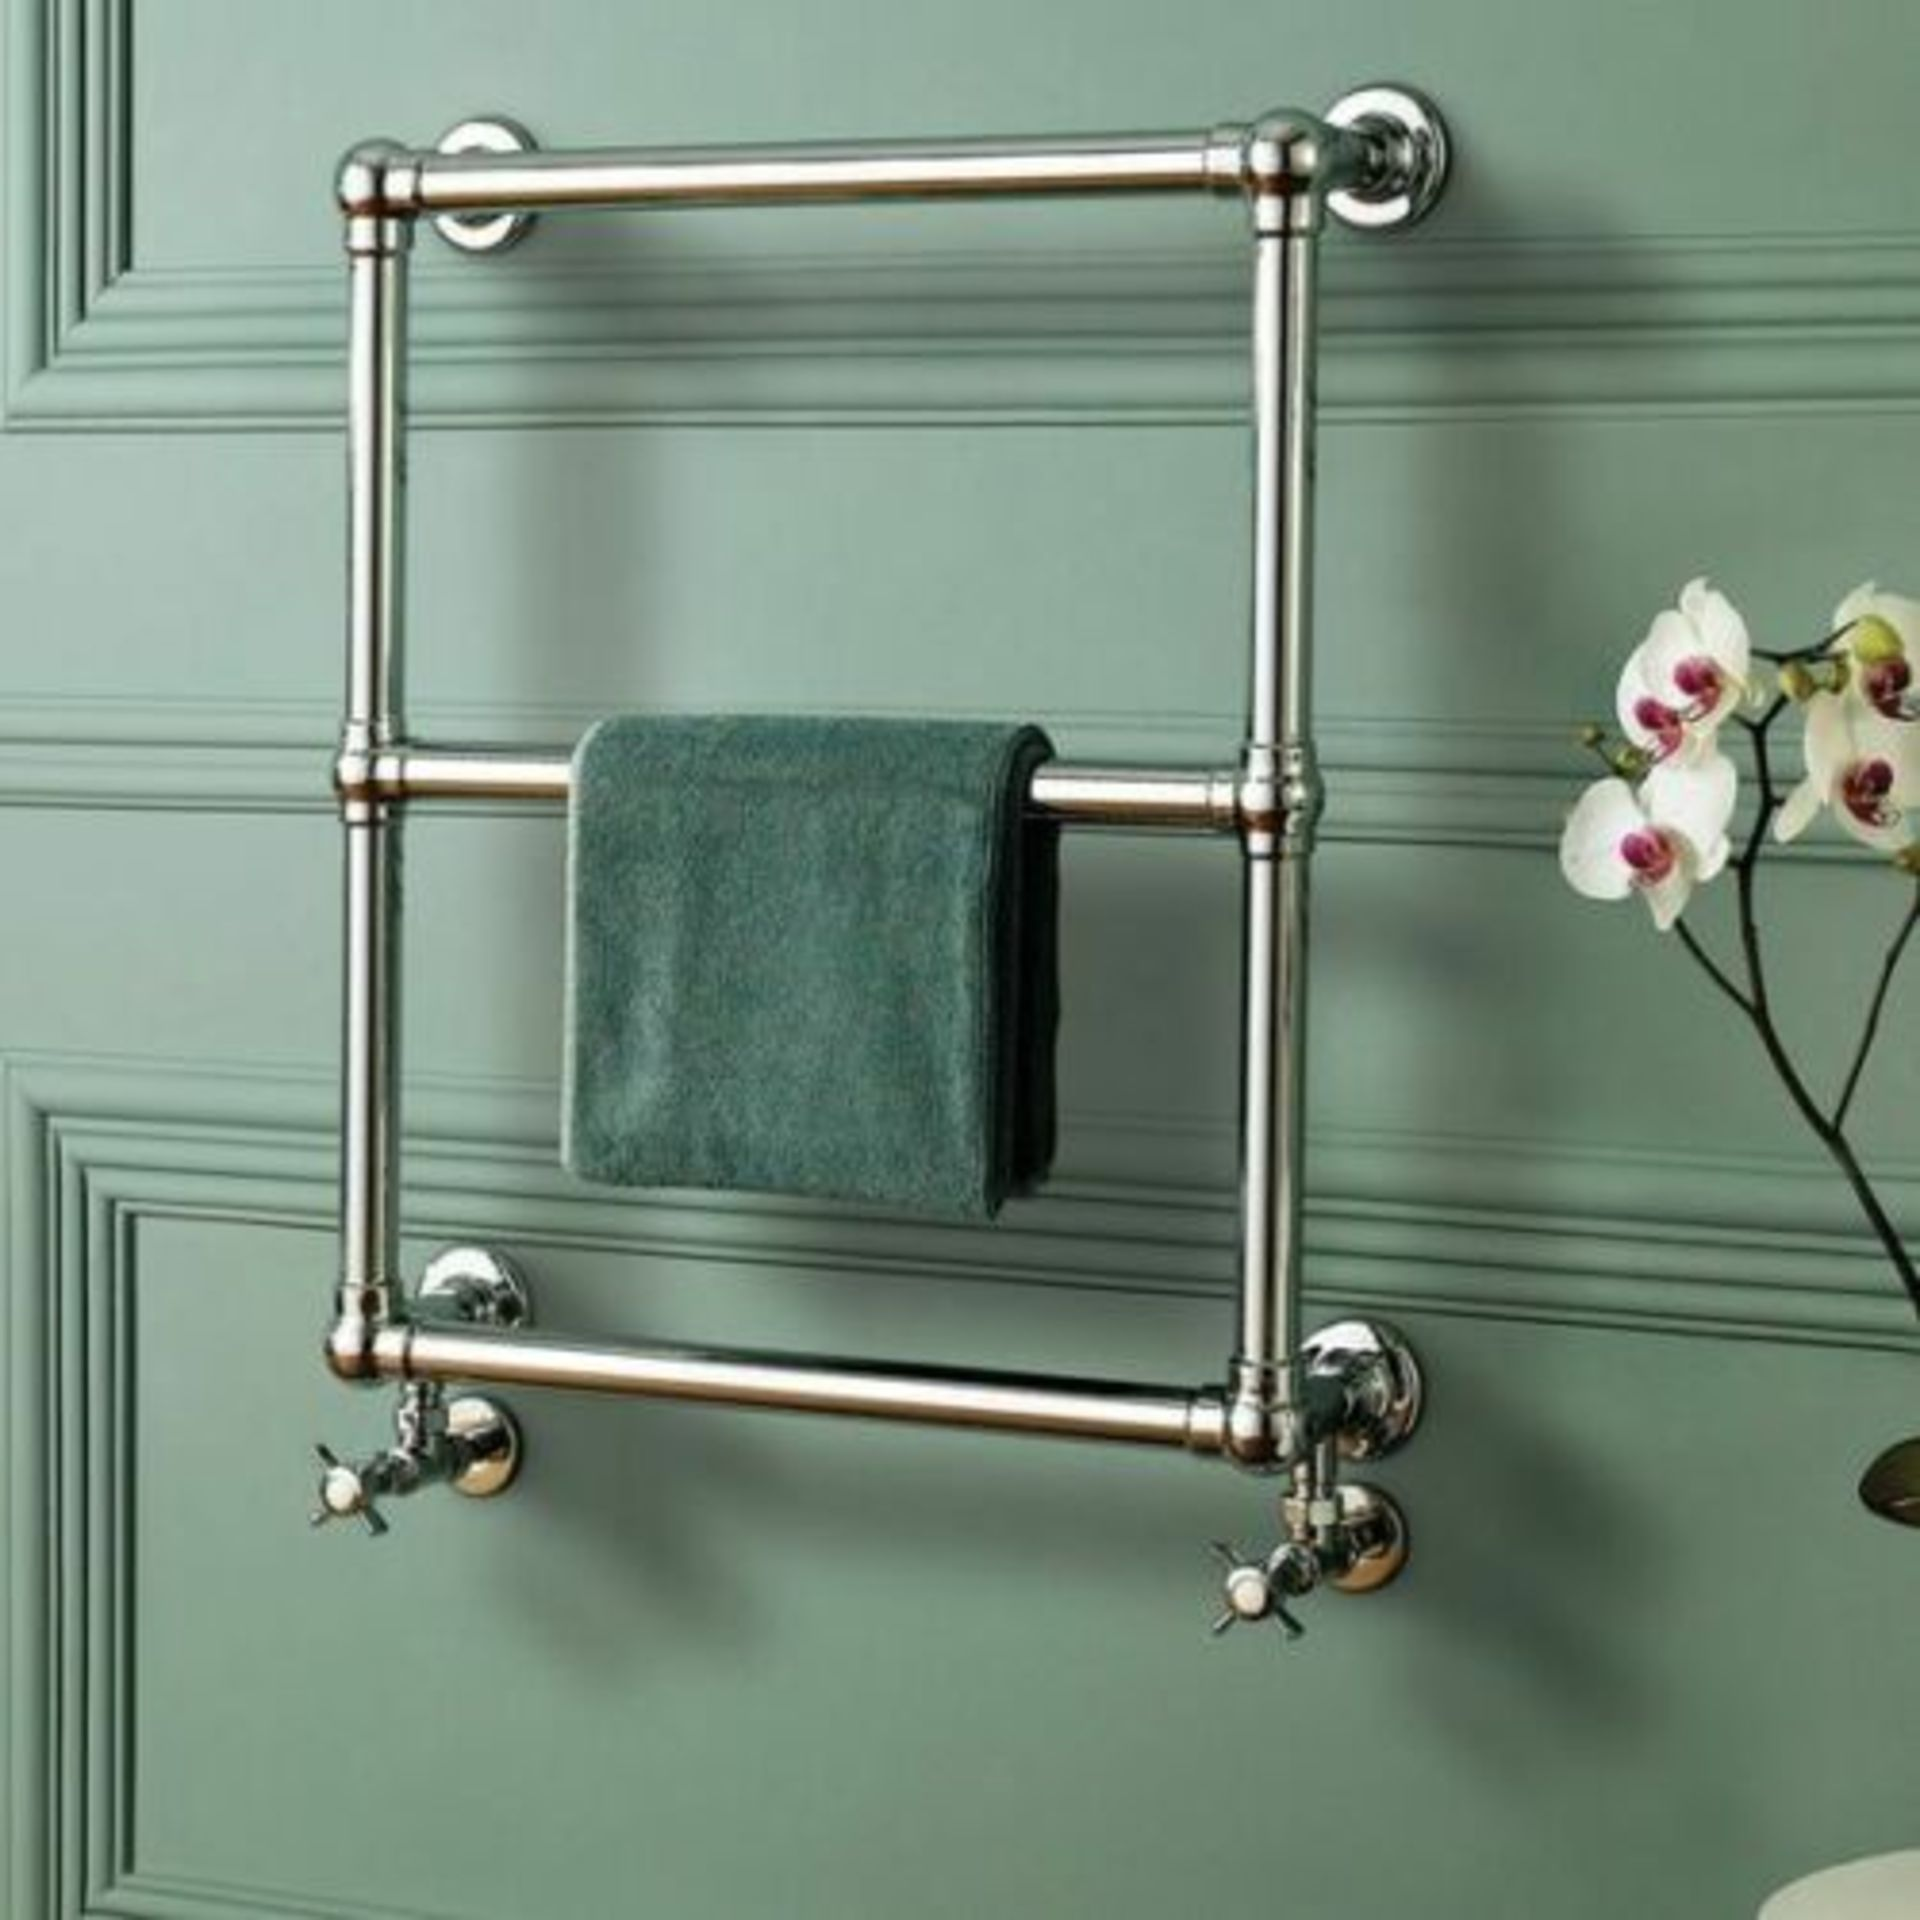 Lot 17 - Fervent Traditional Ball Jointed Towel Radiator 686mm x 600mm Brand new, factory sealed packaging.